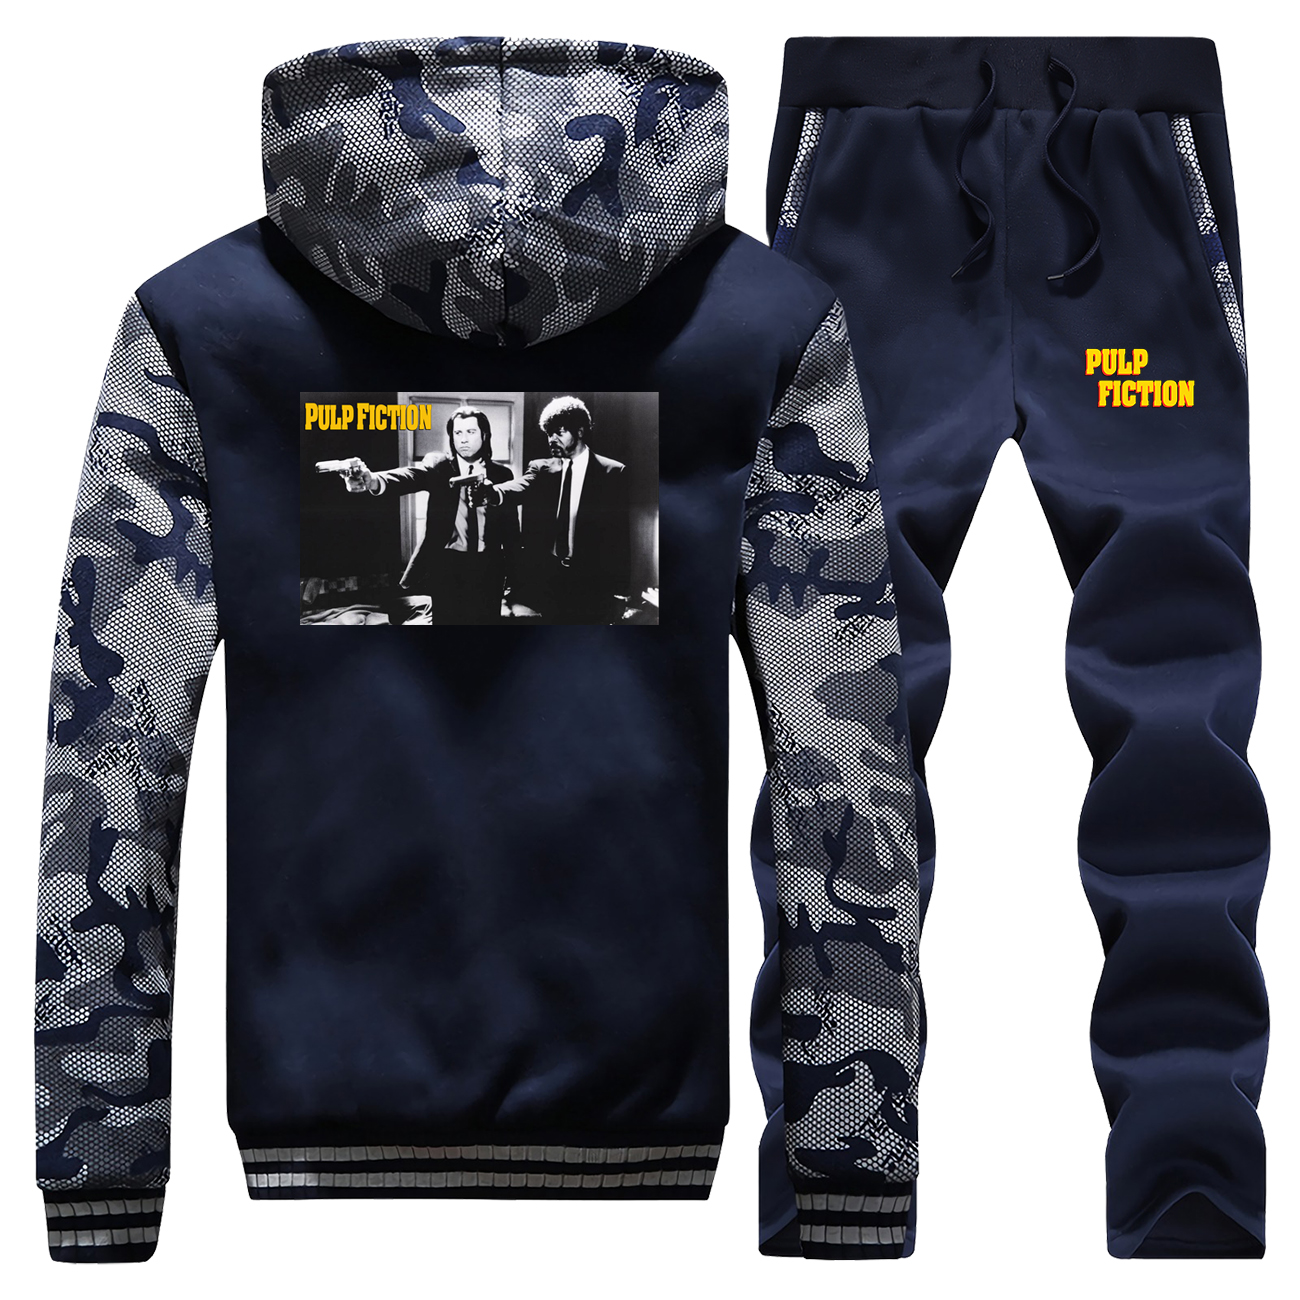 Movie Pulp Fiction Django Kill Bill 2 John Travolta Man Camo Fleece Sweatshirts Hoodies Pants 2pcs Sets Men Harajuku Streetwear